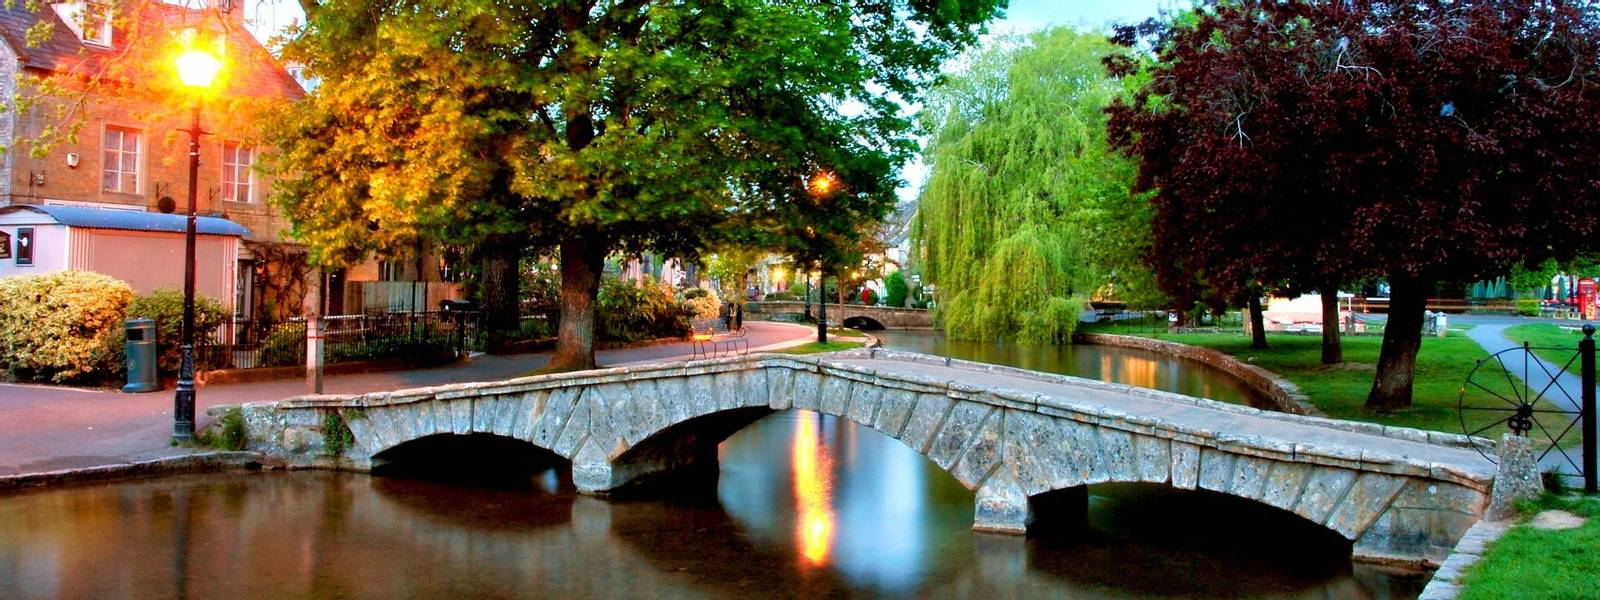 Bourton on the Water Cotswolds Gloucestershire England